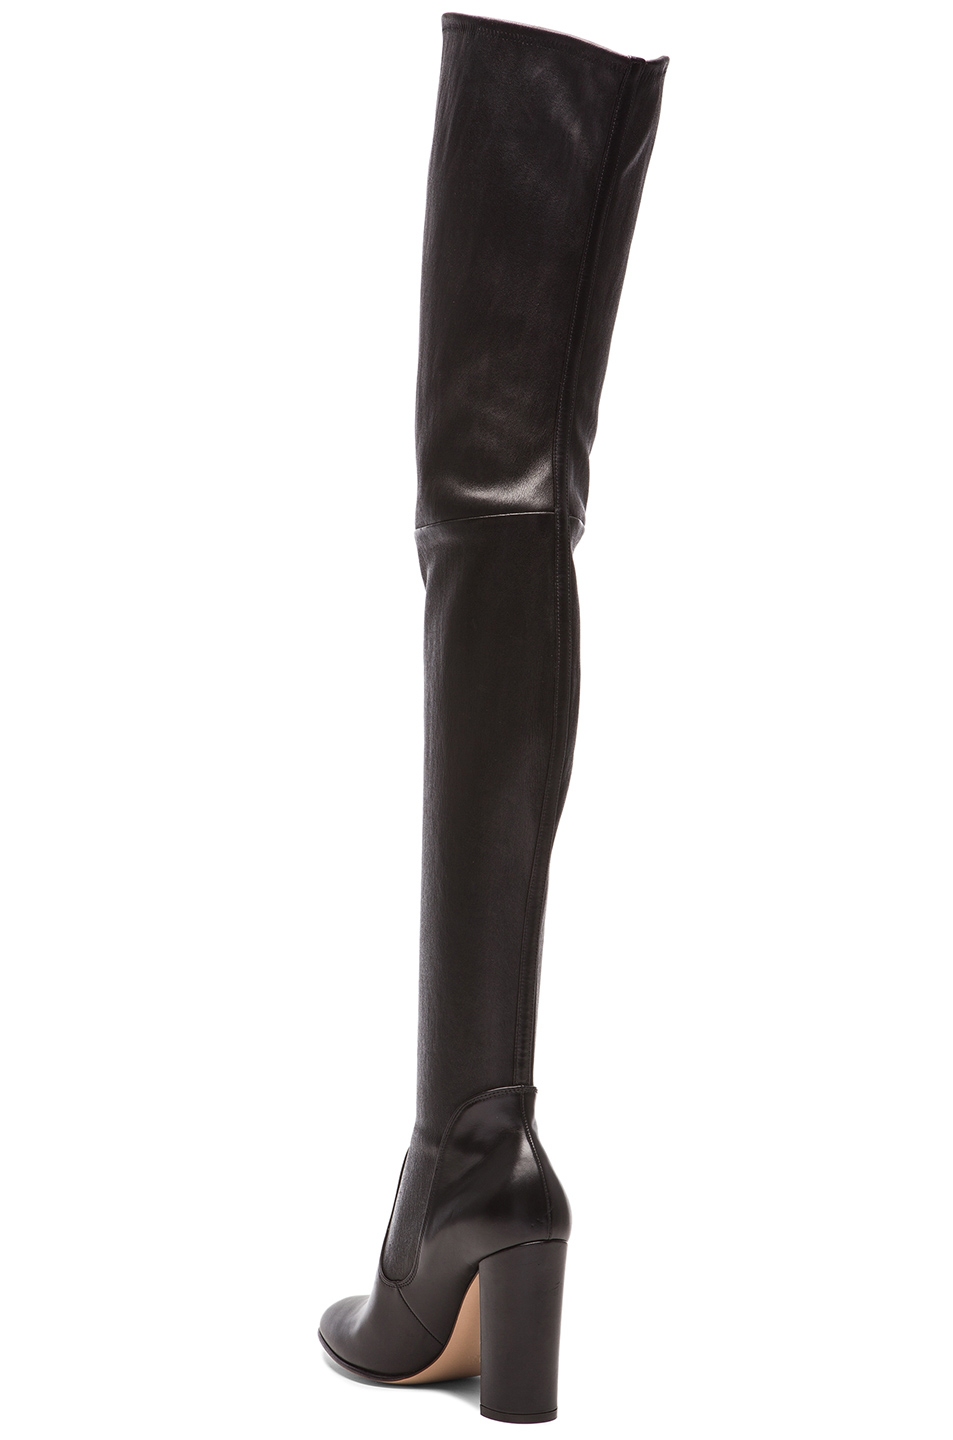 Lyst - Gianvito Rossi Leather Thigh High Boots In Black-6962